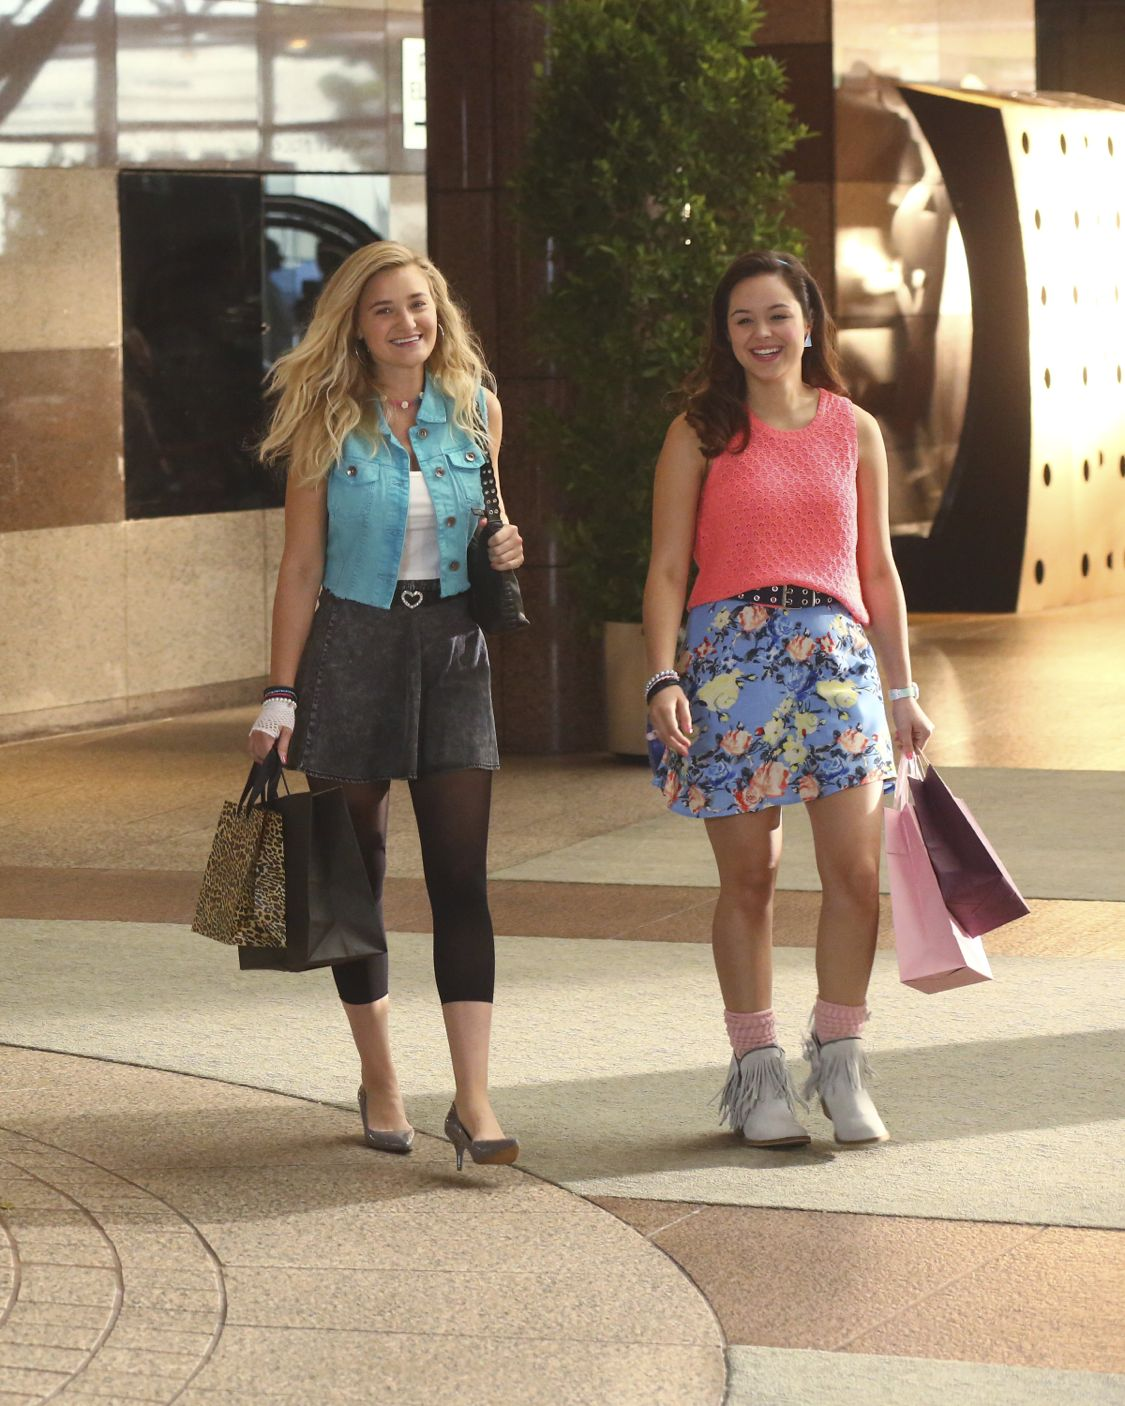 """THE GOLDBERGS -""""Physical Education Education"""" - Erica and Lainey try to find Bill a woman of interest by using new technology for dating. They recruit Adam to create a demo reel, but Beverly insists she will find someone the old fashioned way. Meanwhile, after a """"failed"""" aptitude test, Barry decides he wants to be a gym teacher and becomes Coach Mellor's apprentice, on """"The Goldbergs,"""" WEDNESDAY, SEPTEMBER 28 (8:00-8:30 p.m. EDT), on the ABC Television Network. (ABC/Michael Ansell) AJ MICHALKA, HAYLEY ORRANTIA"""